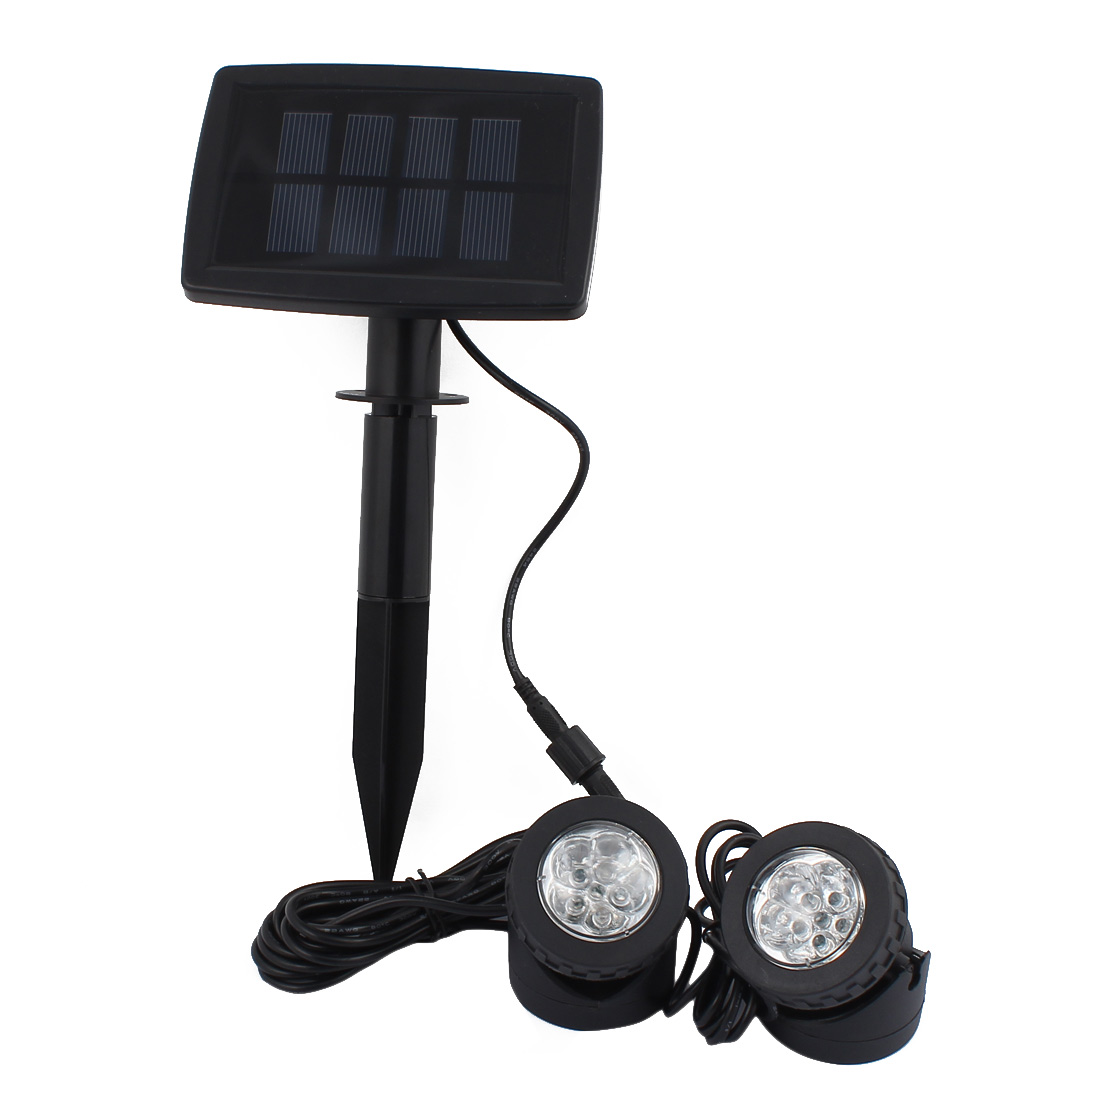 Solar Power 12 LEDs Landscape Spotlight Projection Light with 2 Submersible Lamps for Garden Pool Pond Outdoor Decoration Lighting Underwater Light